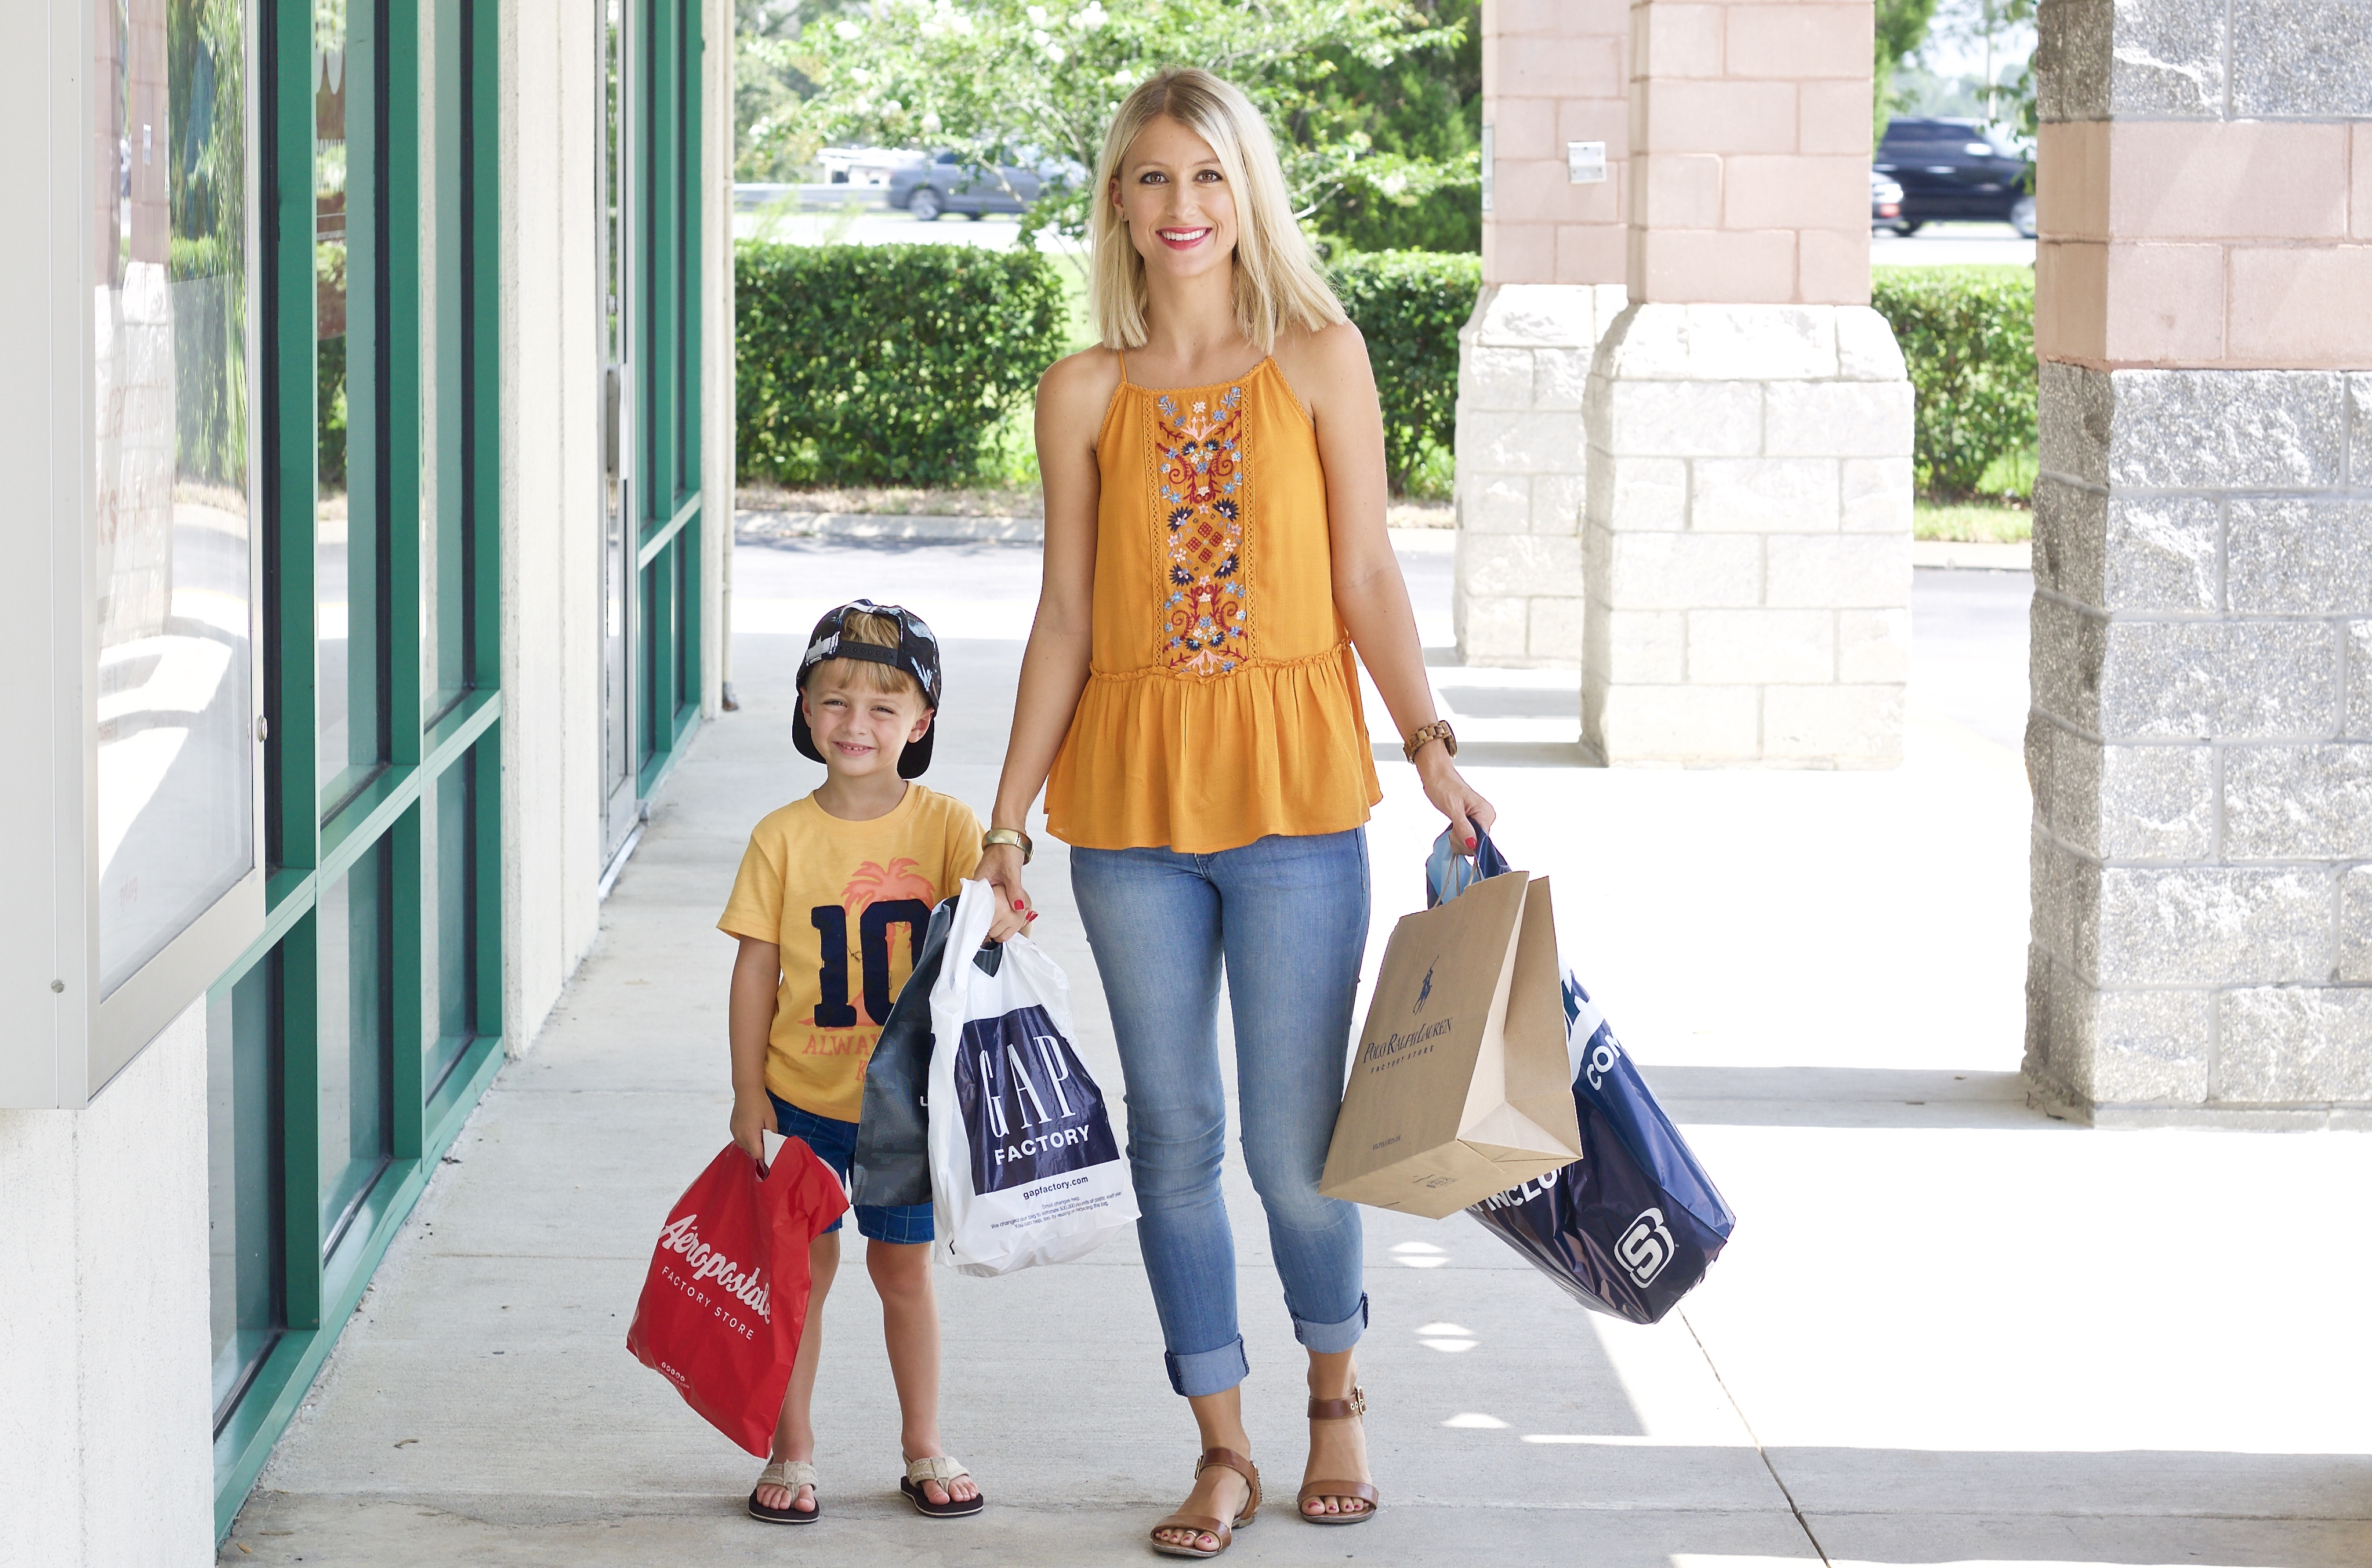 St Augustine Premium Outlets School Shopping